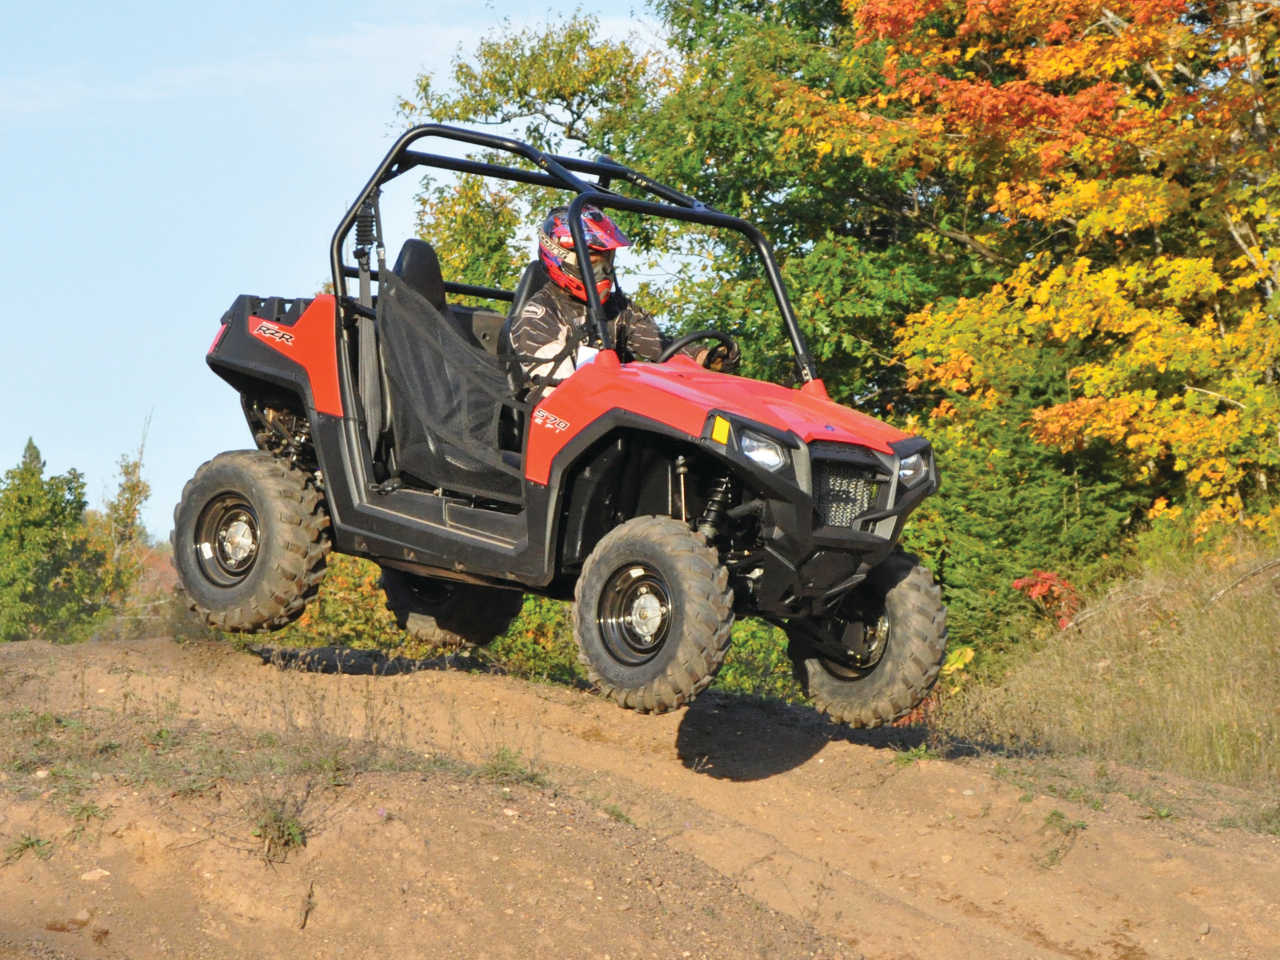 hight resolution of 2013 polaris rzr570 red front right jumping in